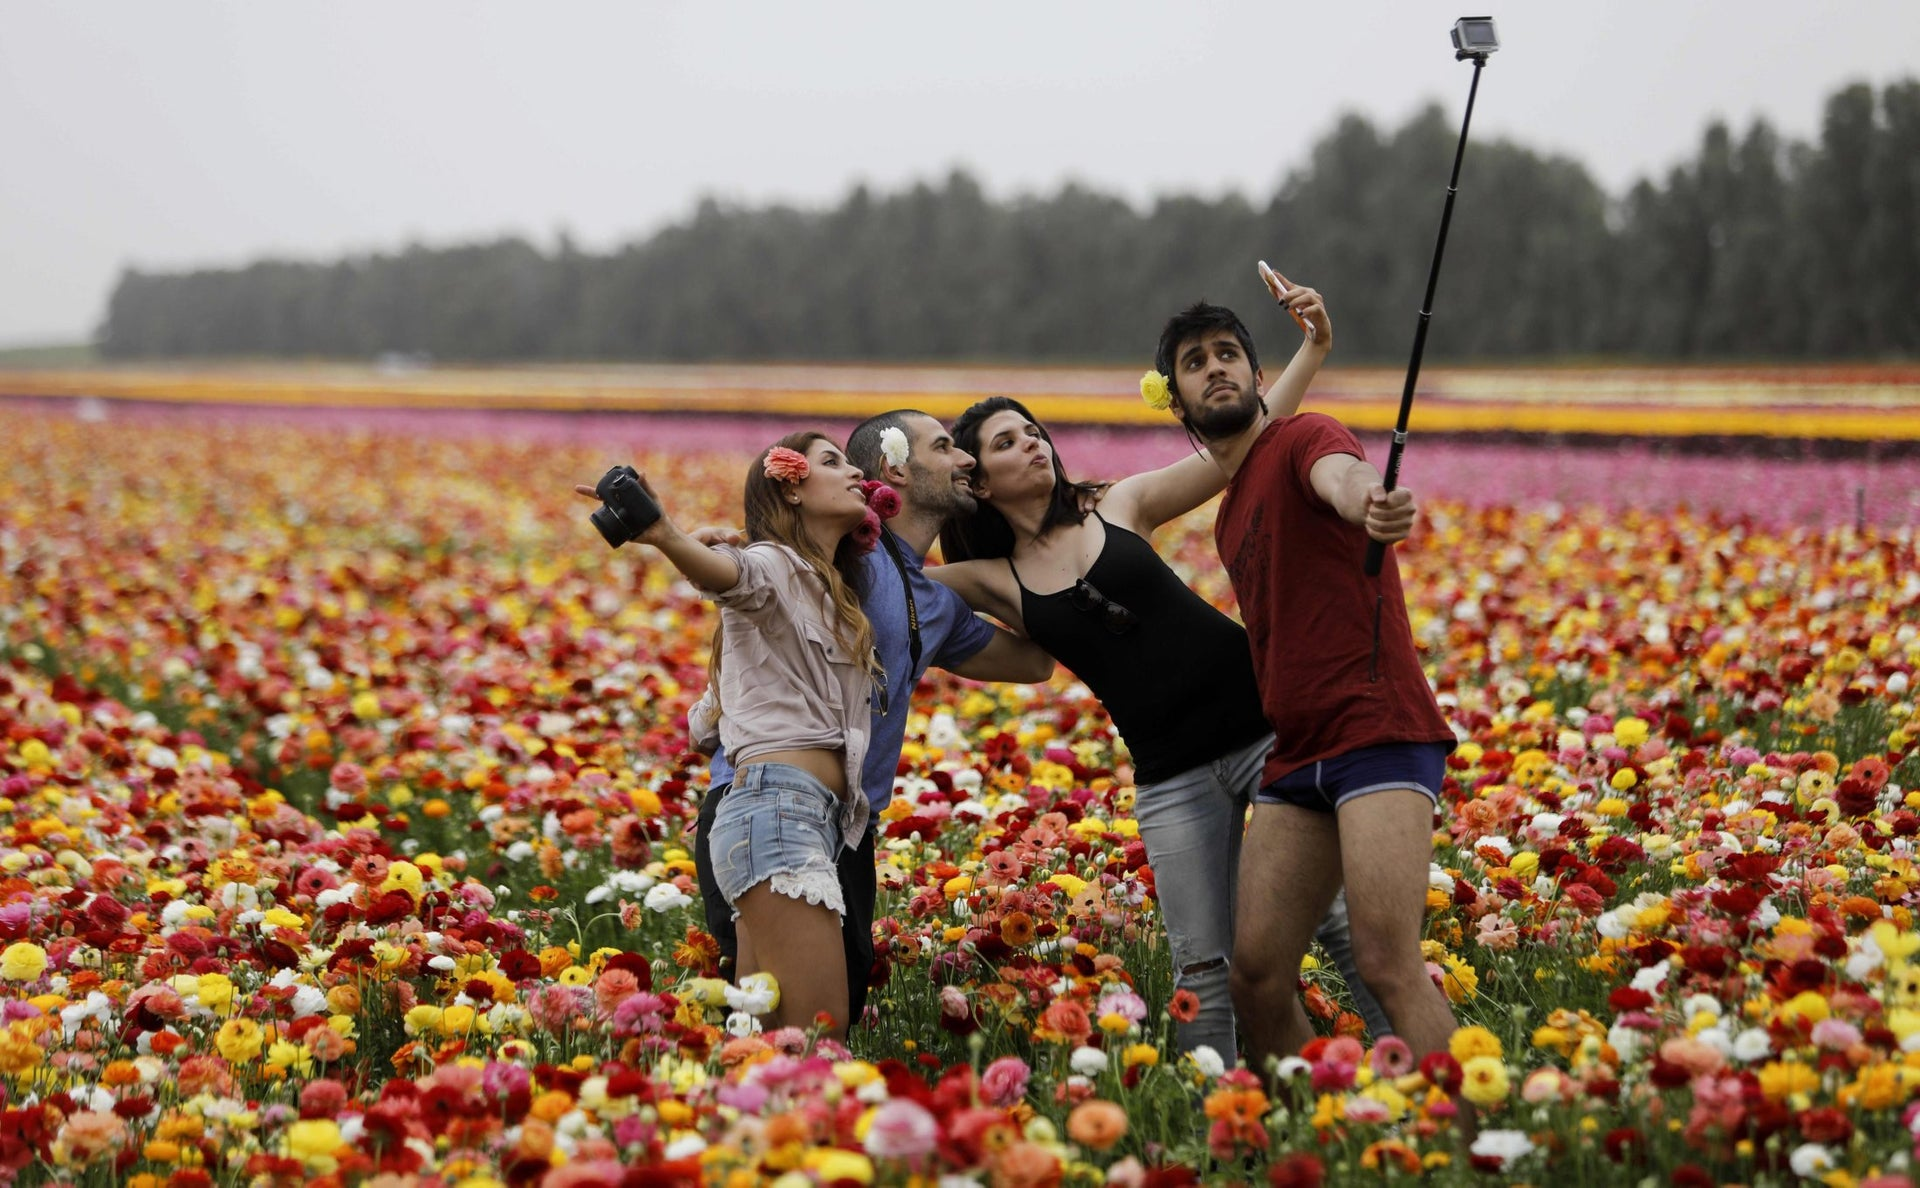 "Israelis take a group ""selfie"" picture with a cell phone and a rugged camera, as they enjoy the Ranunculus flowers in a field in the southern Israeli Kibbutz of Nir Yitzhak, located along the Israeli-Gaza Strip border, during the Jewish holiday of Pesach (Passover) on April 12, 2017."